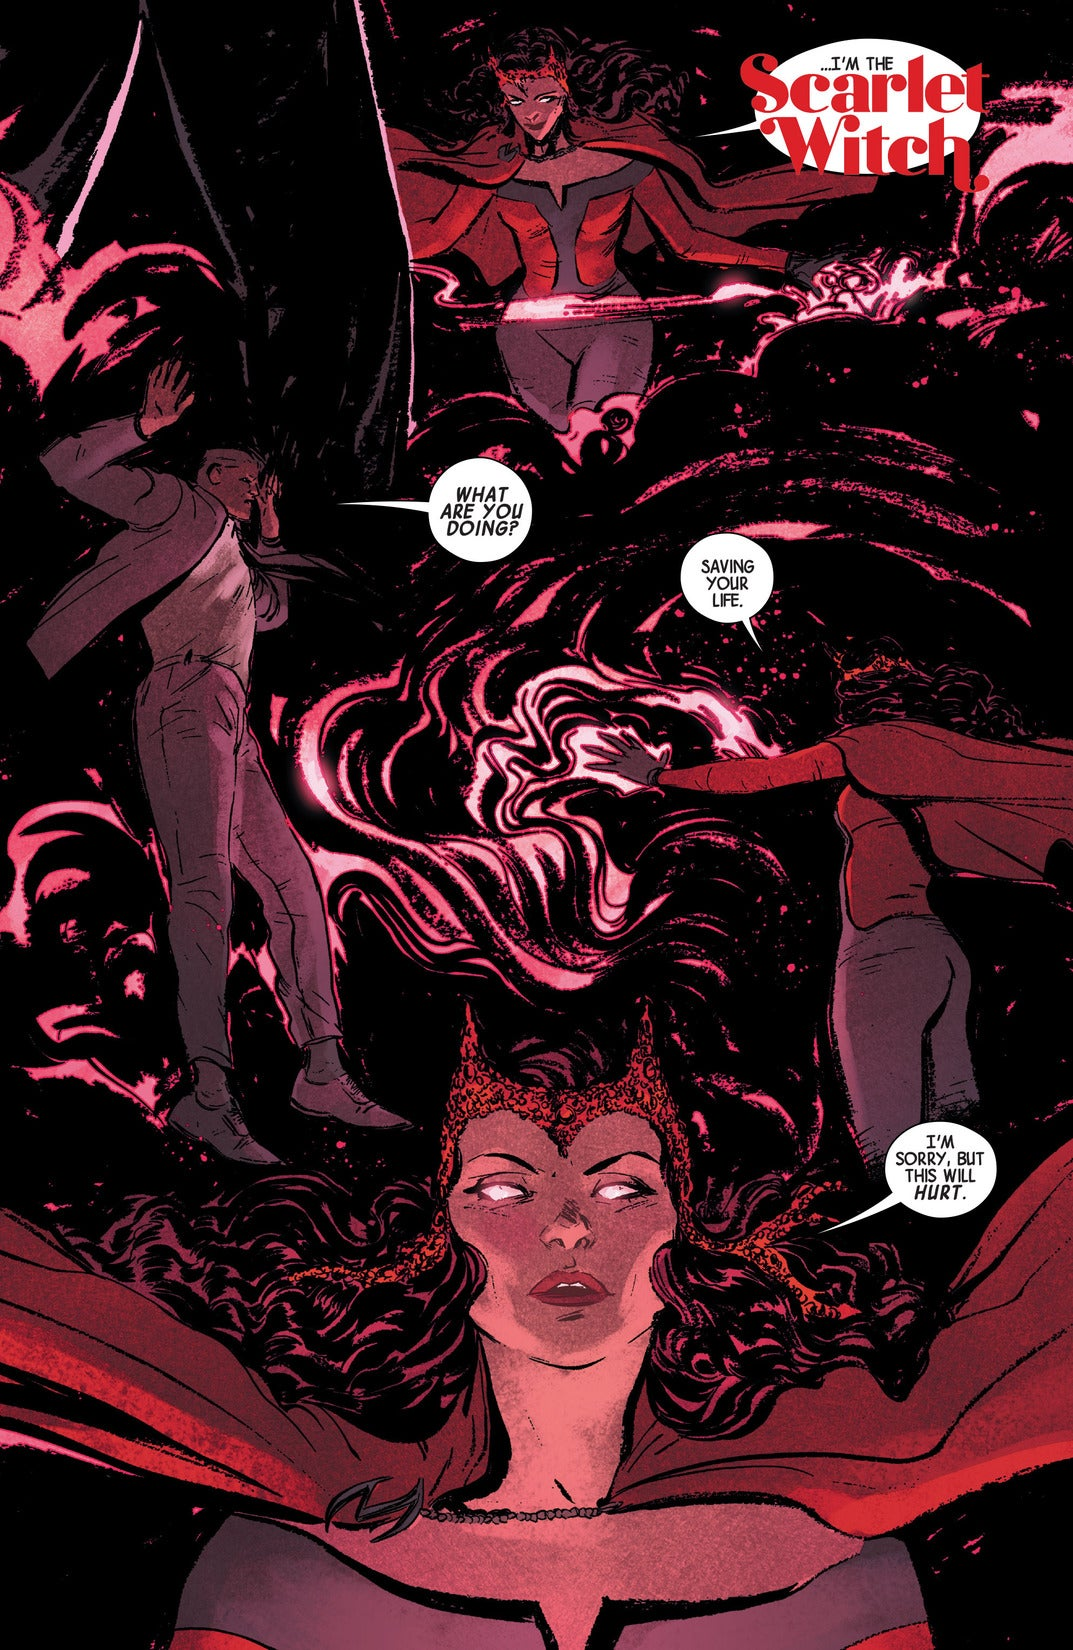 Marvel's Scarlet Witch TV Series Is The Perfect Chance To Explore